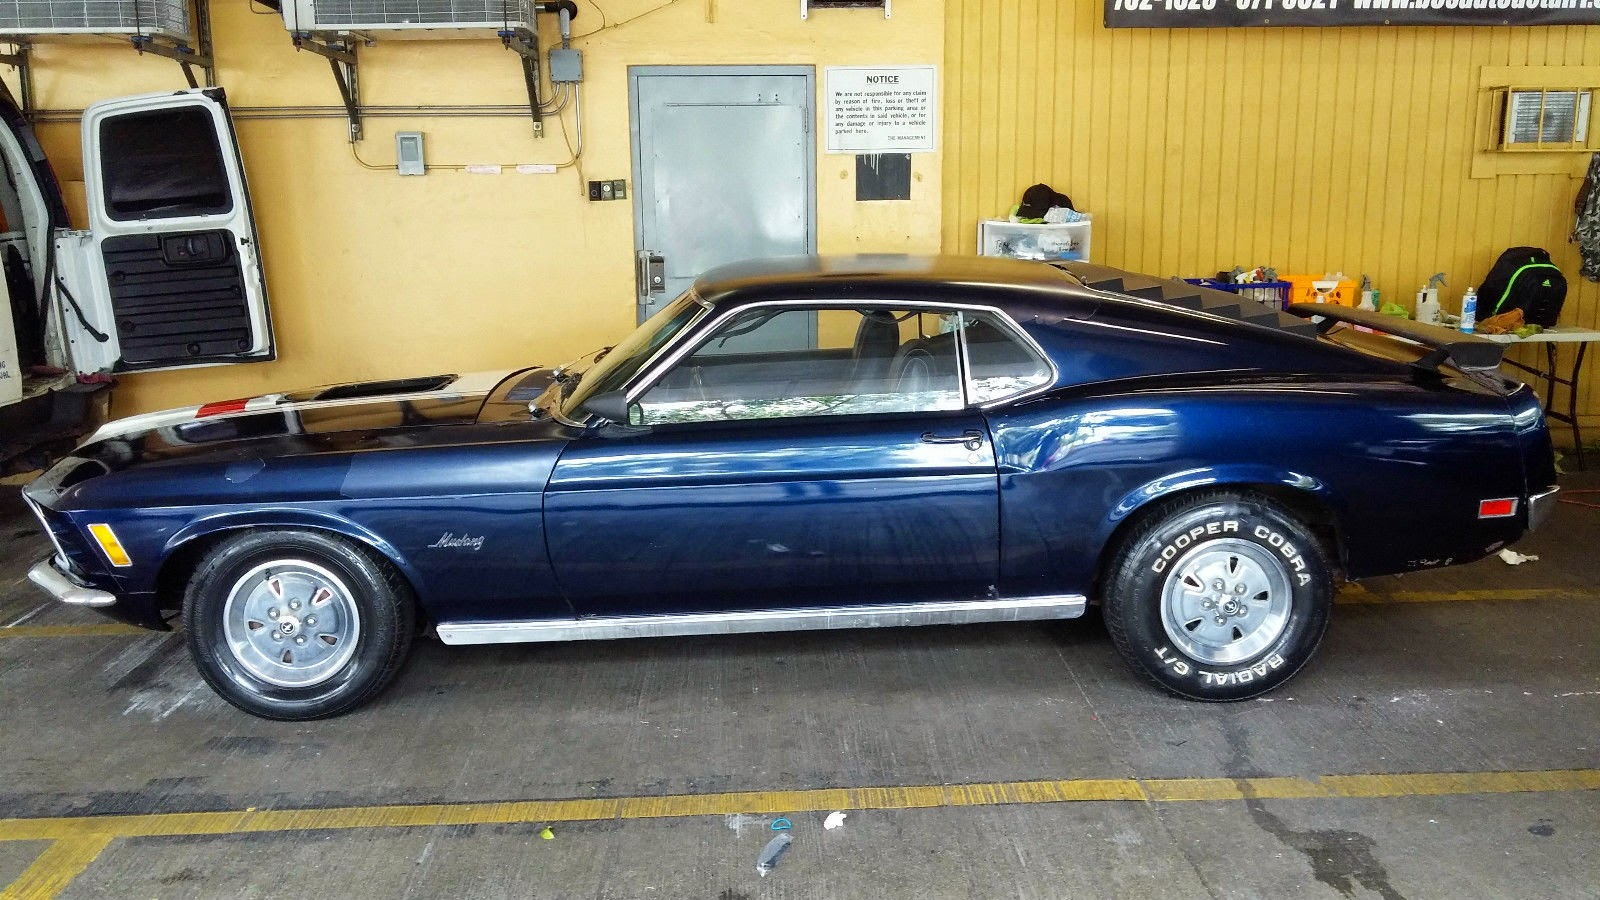 Although they share 99 of their parts the 1970 mustang is easily distinguishable from the 1969 model by the 2 headlight and funky tri bar turn signal